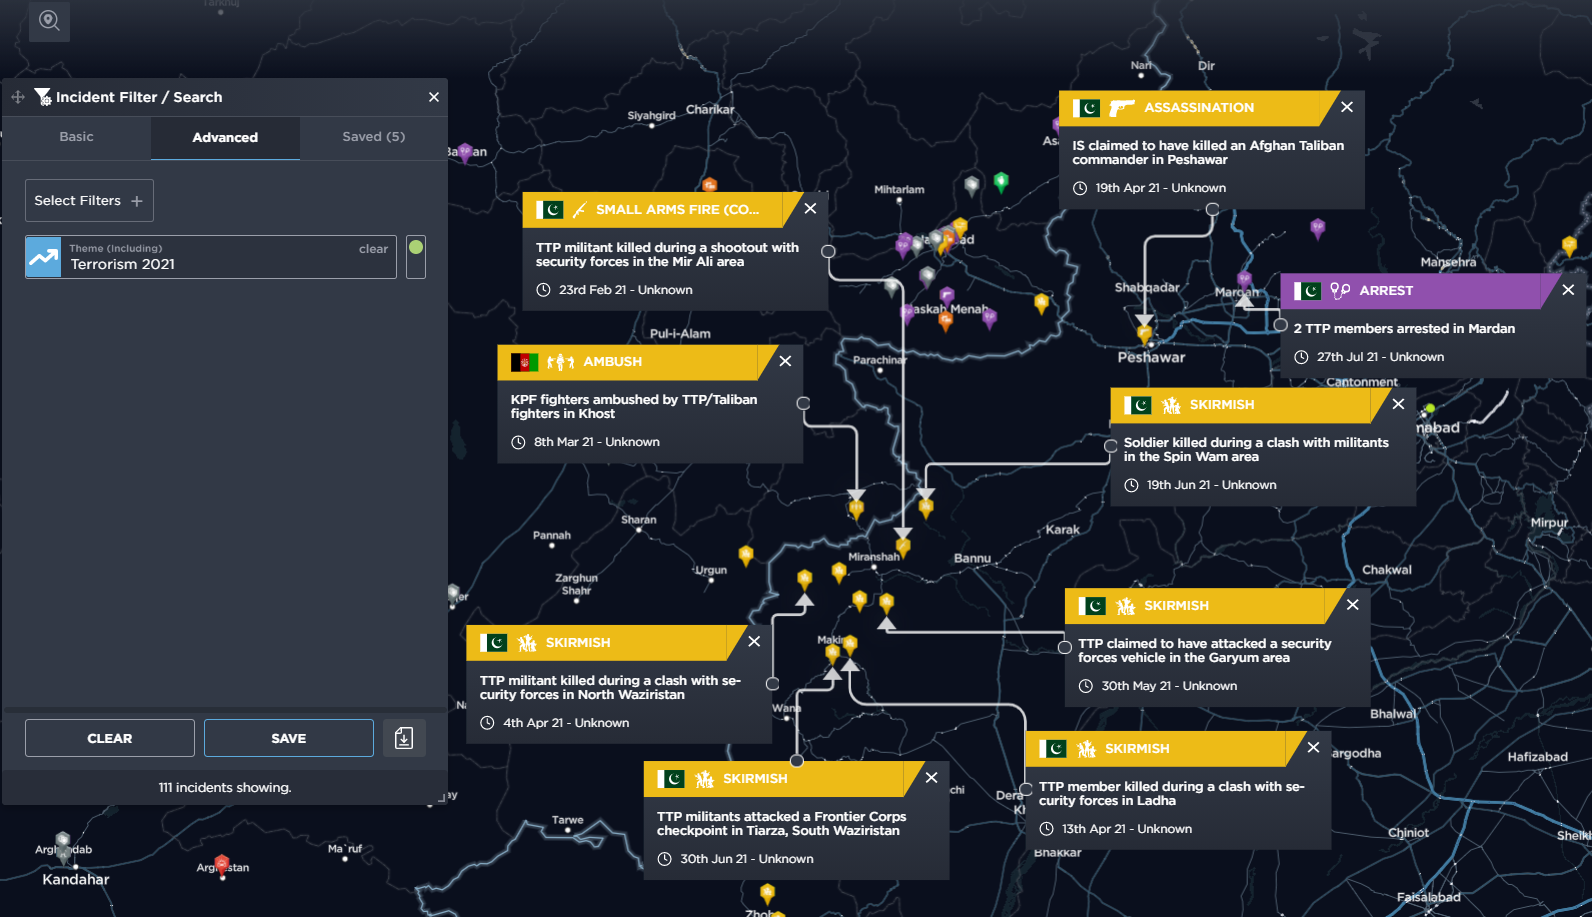 Terrorist related Incidents in Khyber Pakhtunkhwa Province during 2021